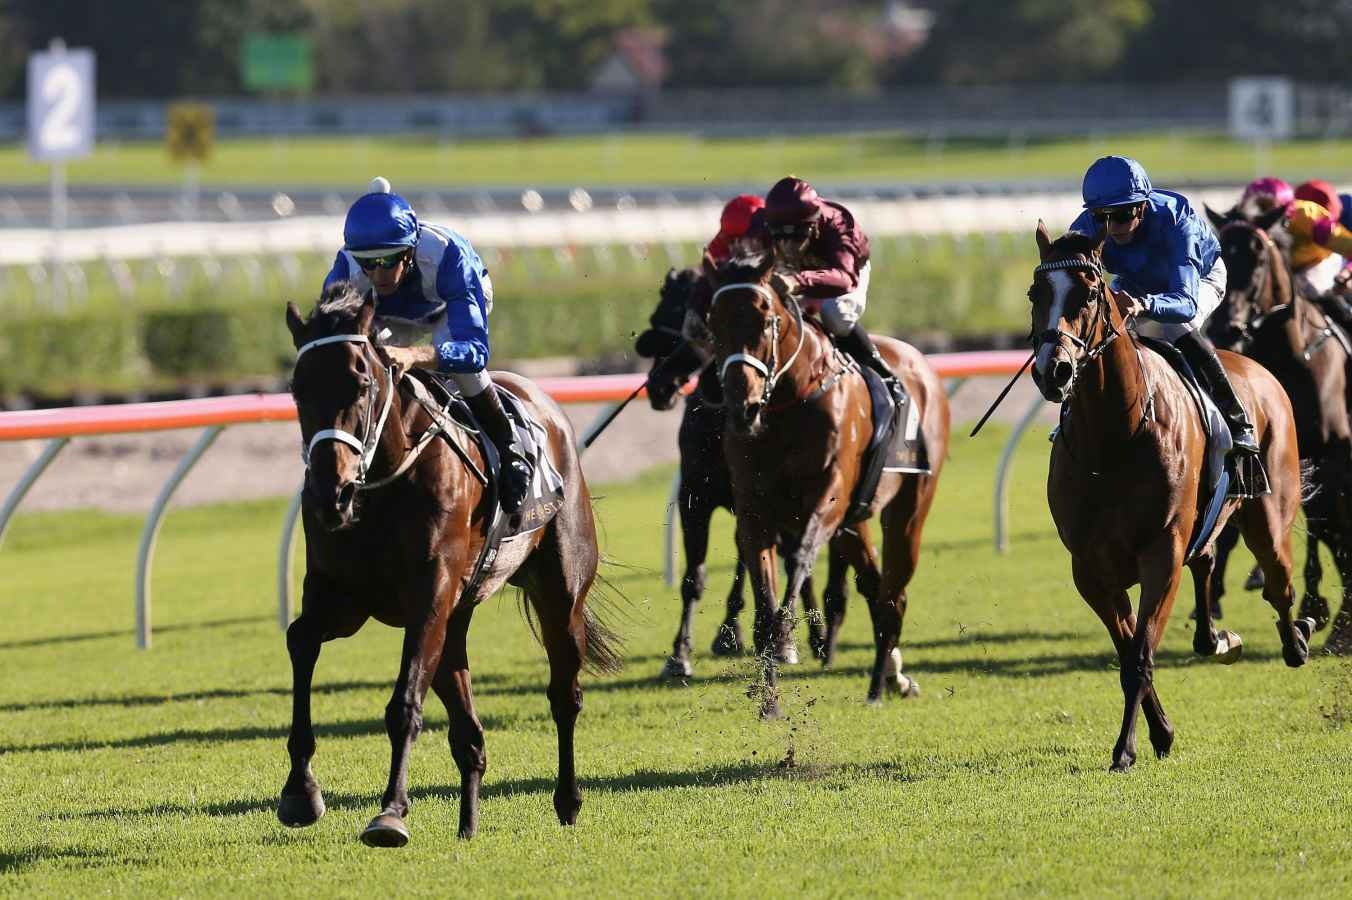 Winx to face 9 rivals in Chipping Norton